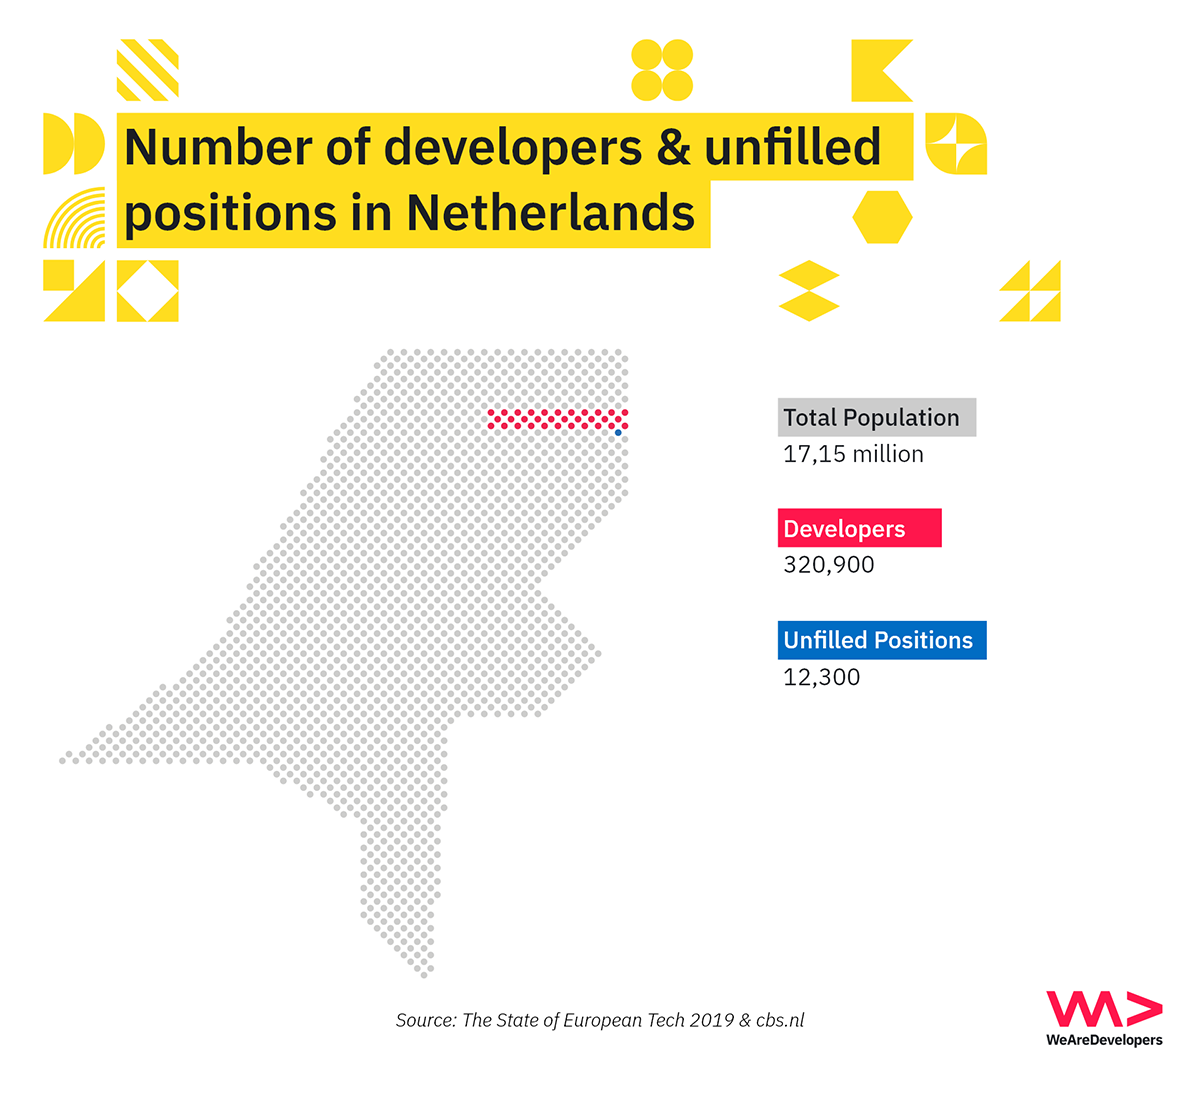 Number of developers & unfilled positions in the Netherlands